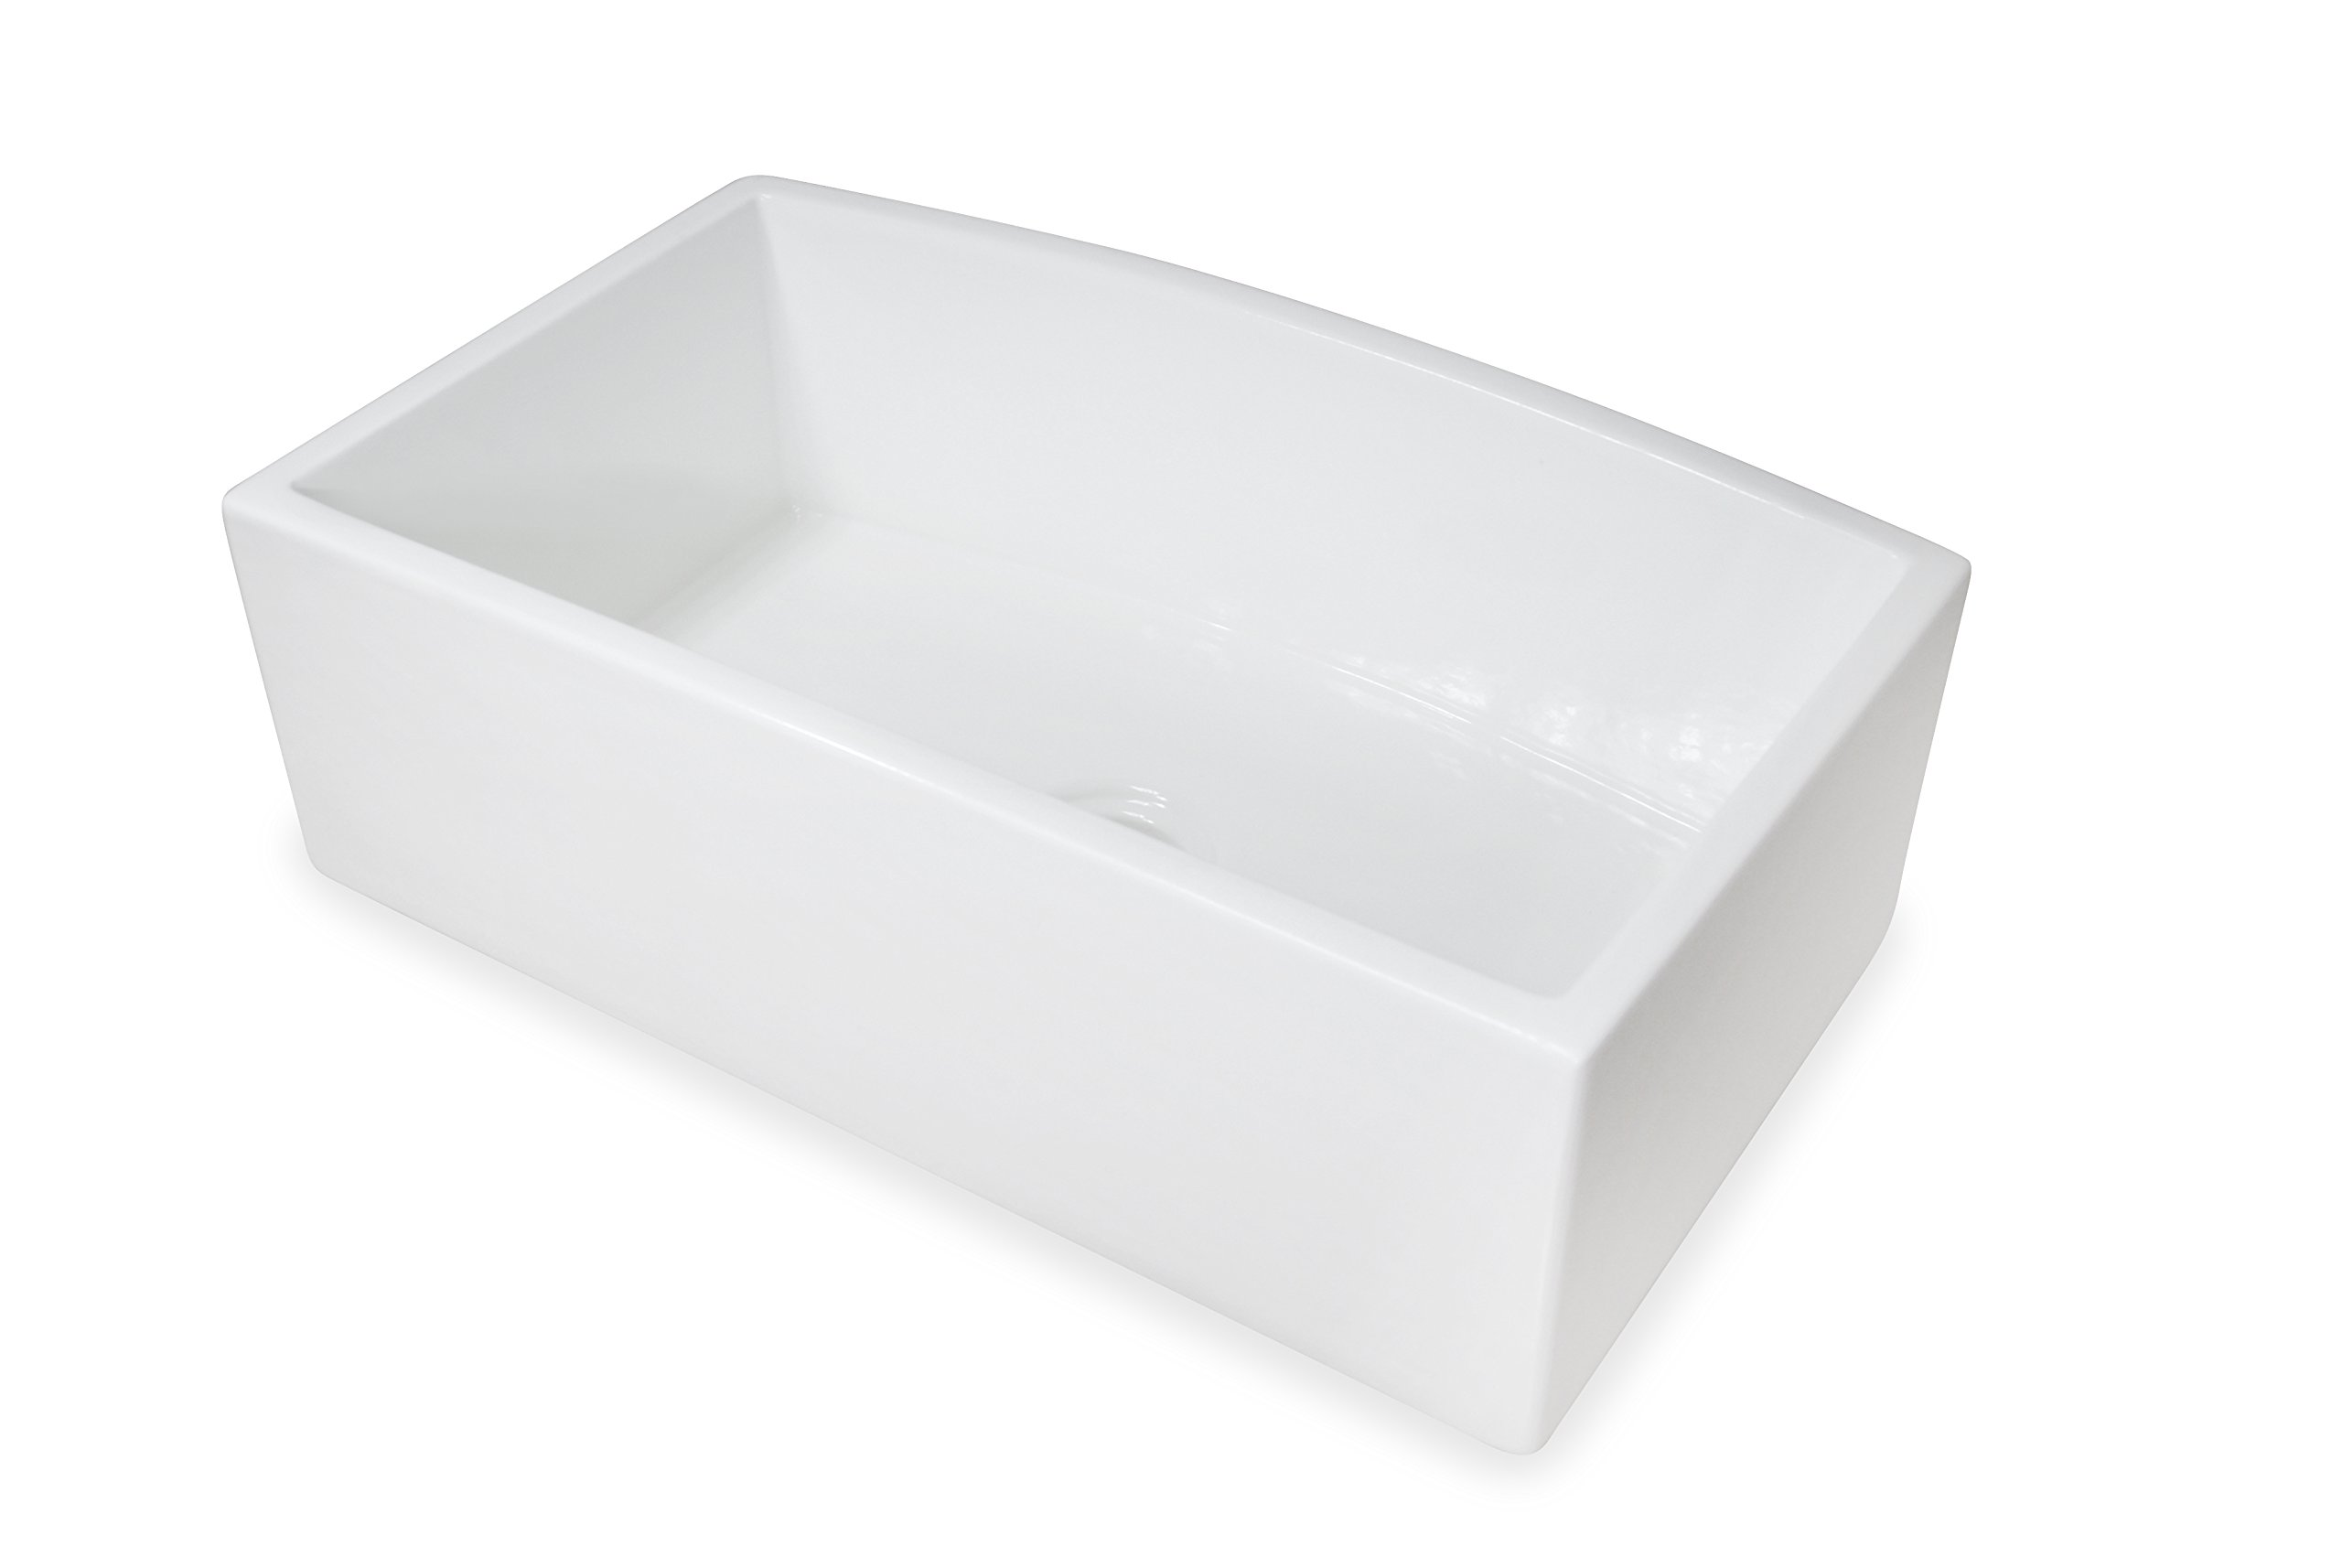 Regallo TRUE FIRECLAY Reversible 30'' Apron Front Sink by MOCCOA, Farmhouse Kitchen Sink White … by MOCCOA (Image #5)